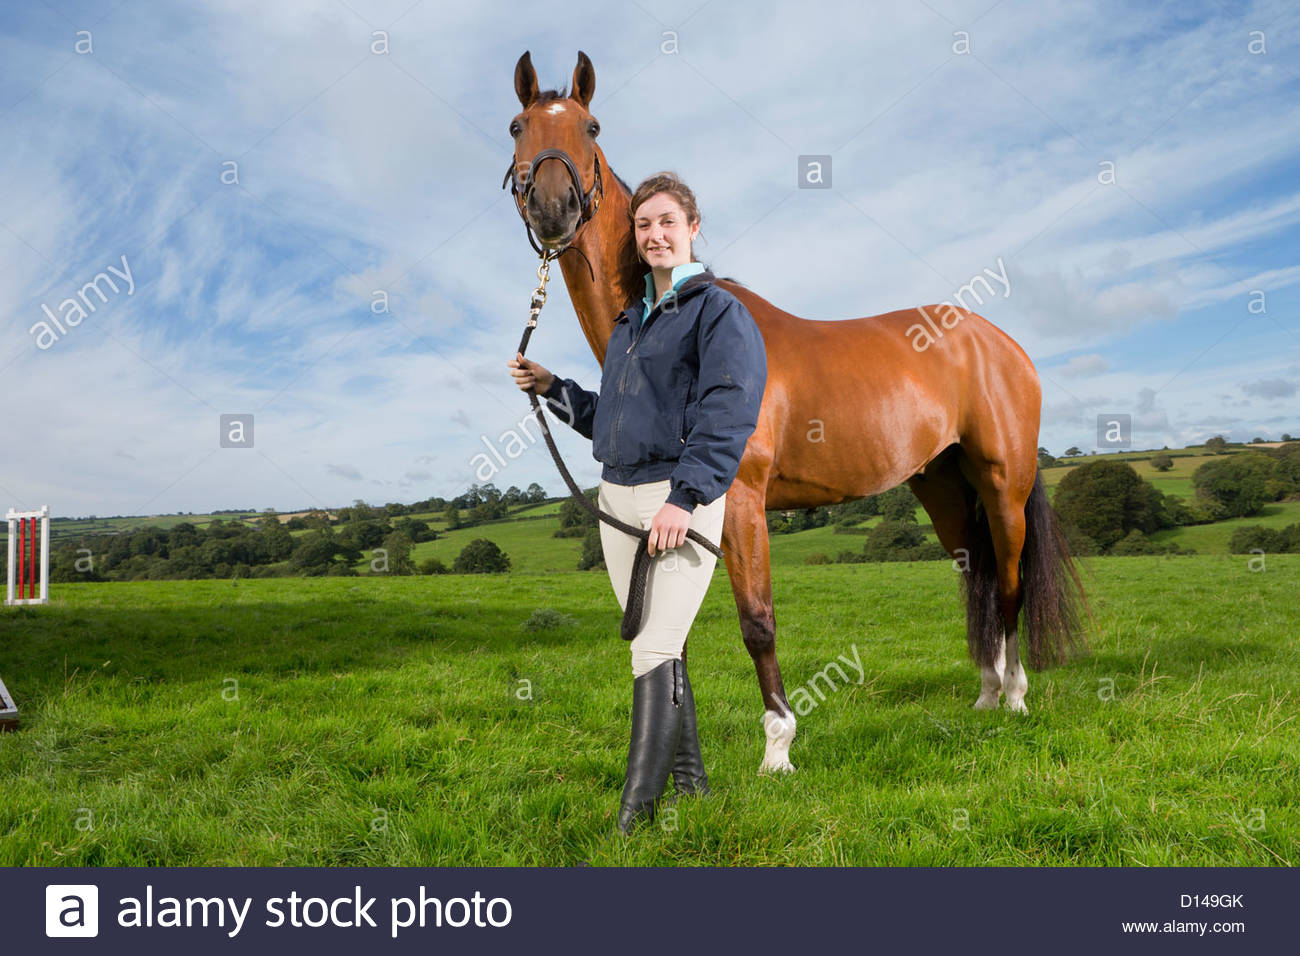 Portrait of smiling girl with horse in field - Stock Image